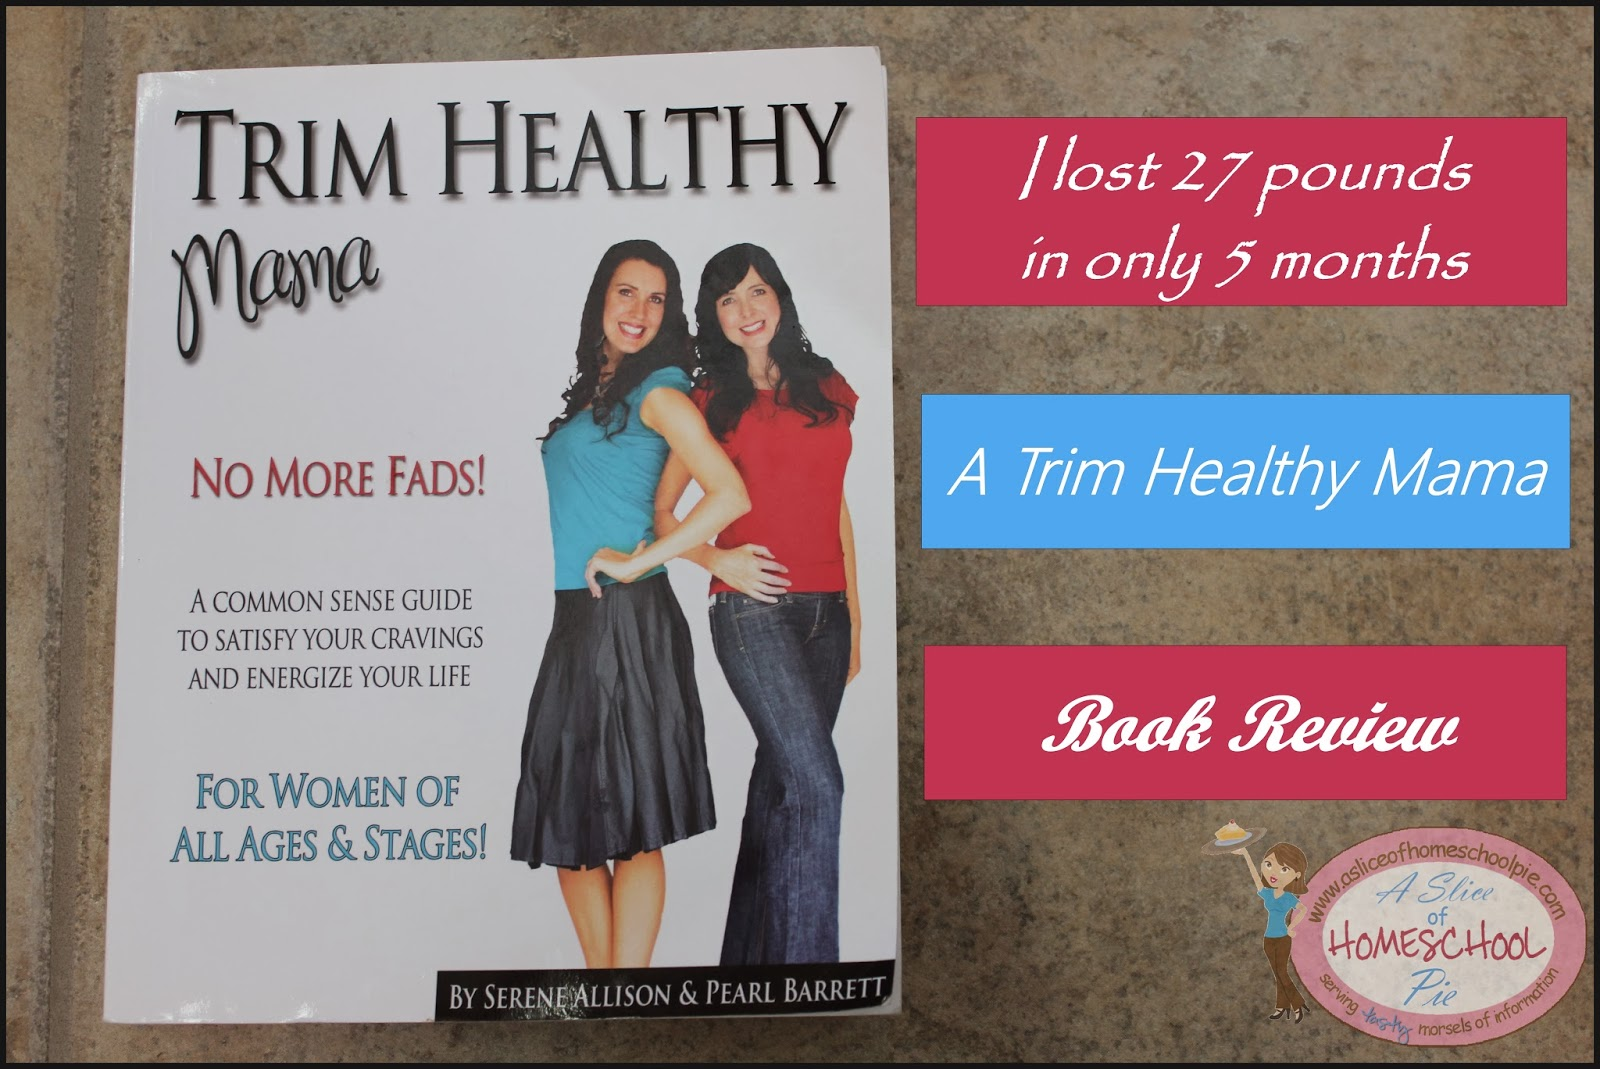 Trim Healthy Mama Book Review by A Slice of Homeschool Pie.com #TrimHealthyMama